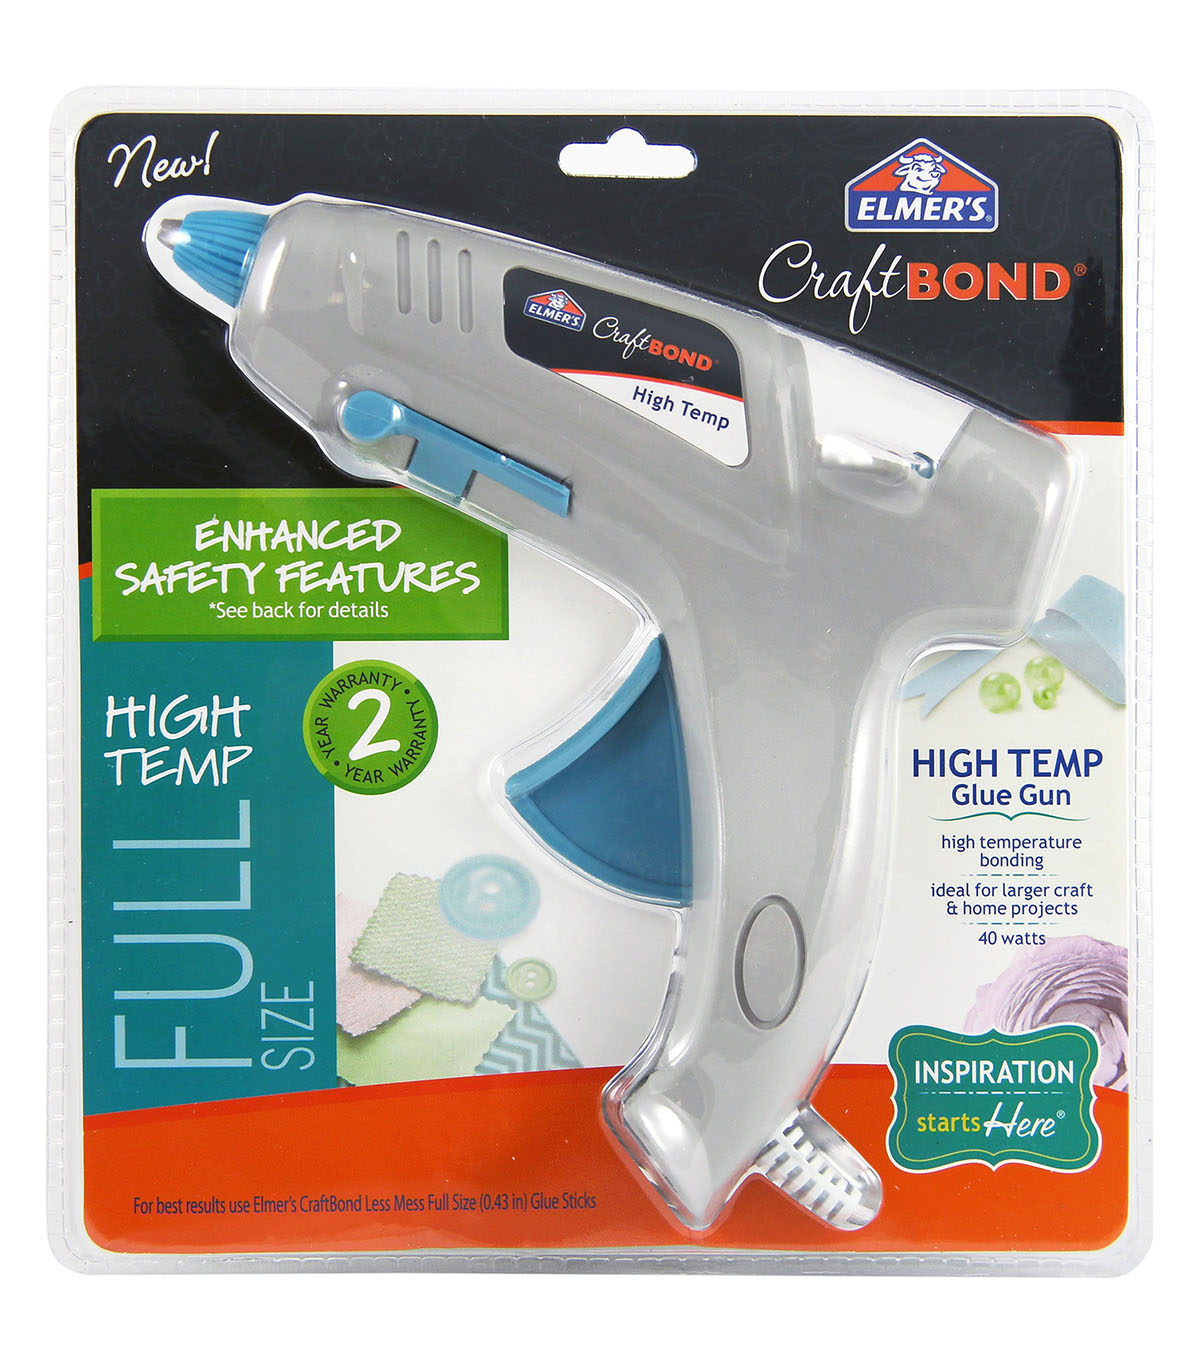 Elmer\u0027s CraftBond Full Size High-Temp Glue Gun